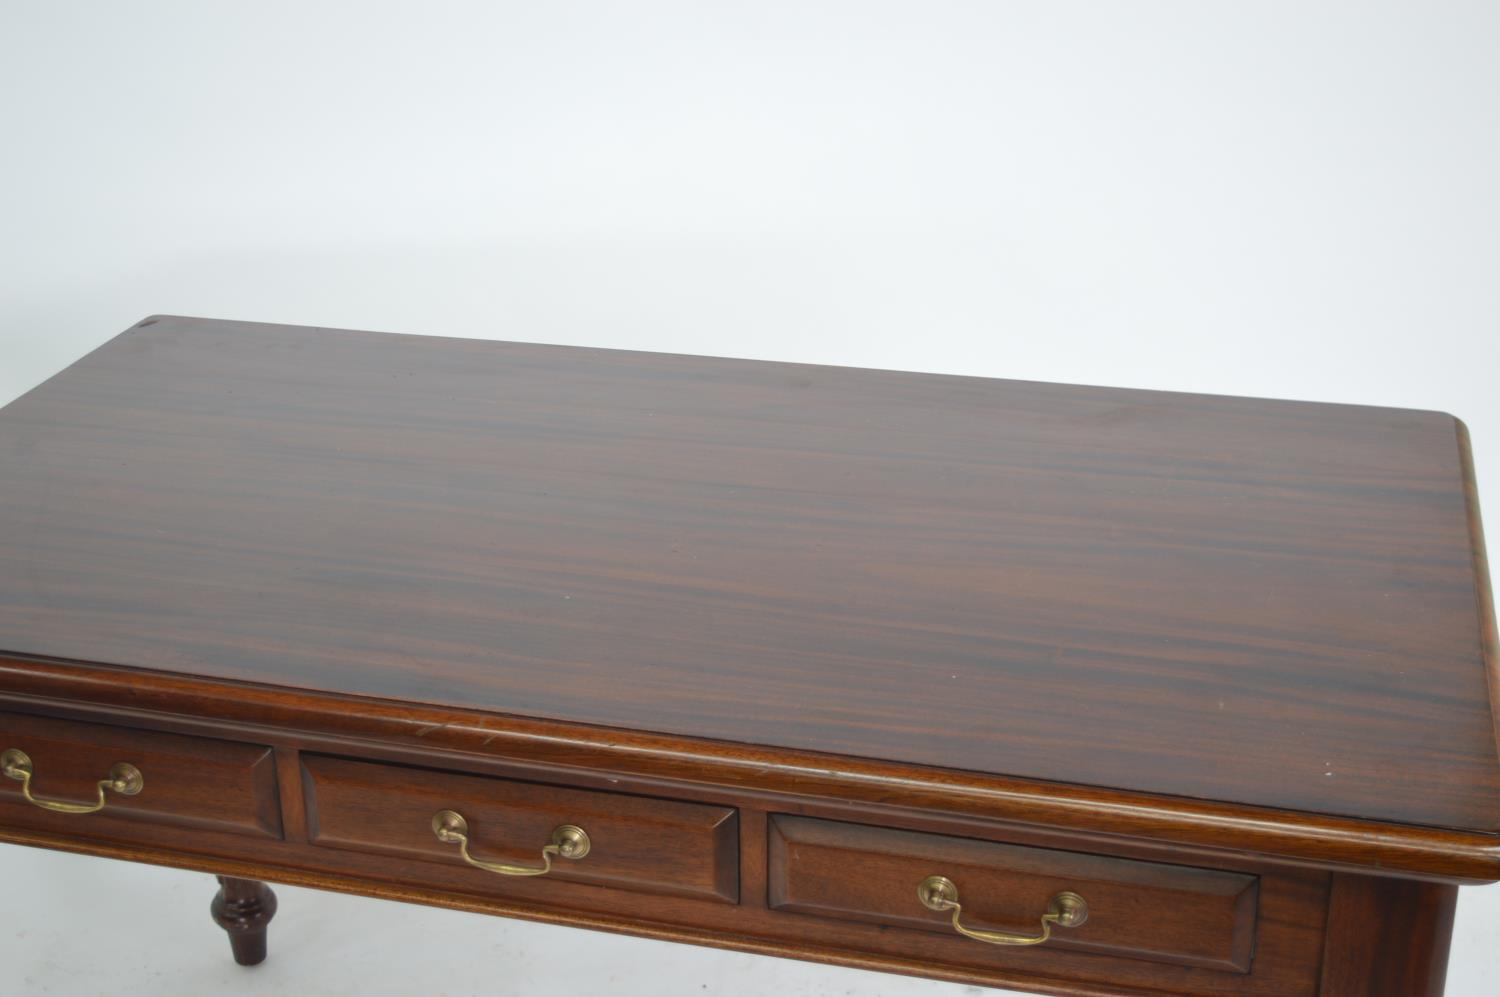 Mahogany side table. - Image 2 of 3